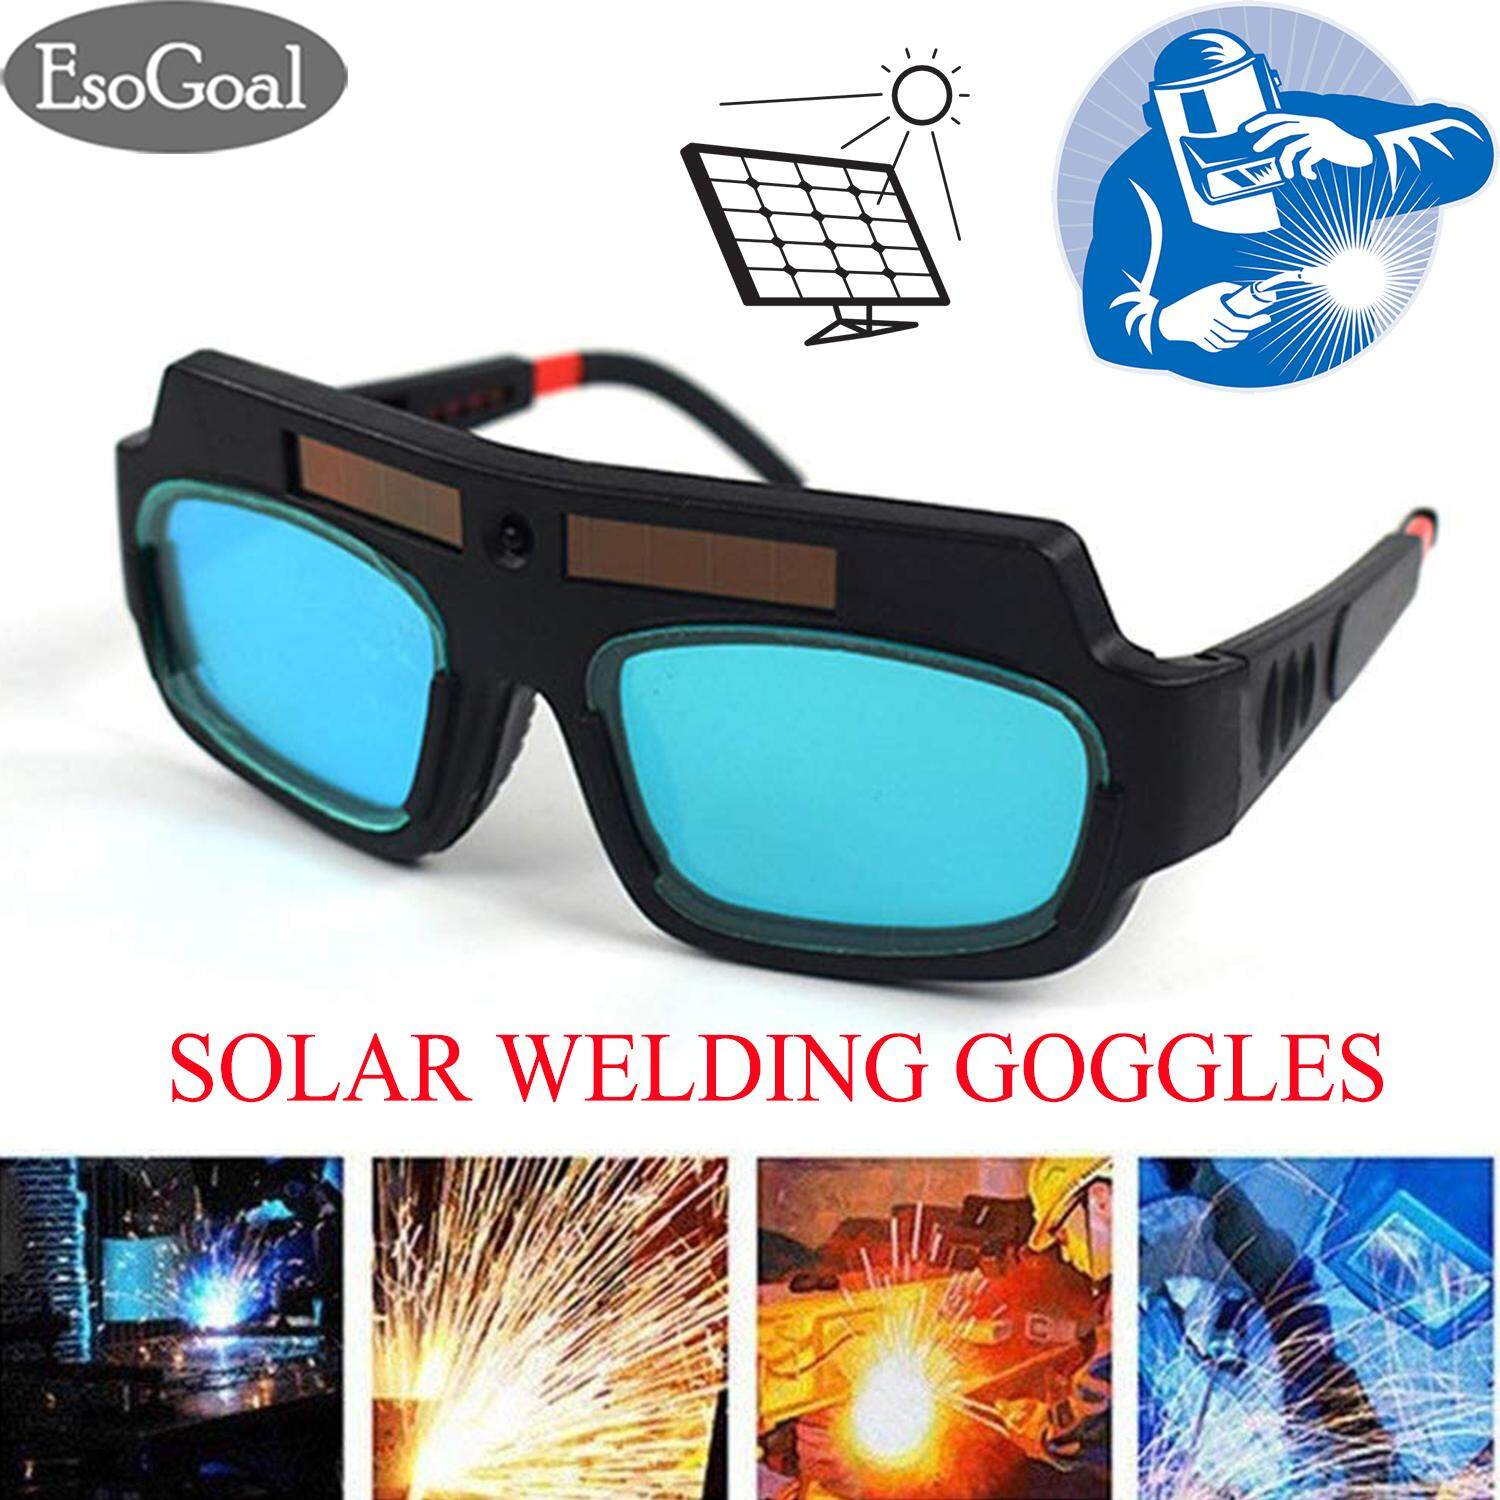 EsoGoal Welding Tools Eyes Protection Welding Goggles Glasses Mask Solar Powered Auto Darkening Welding Eyewear Professional